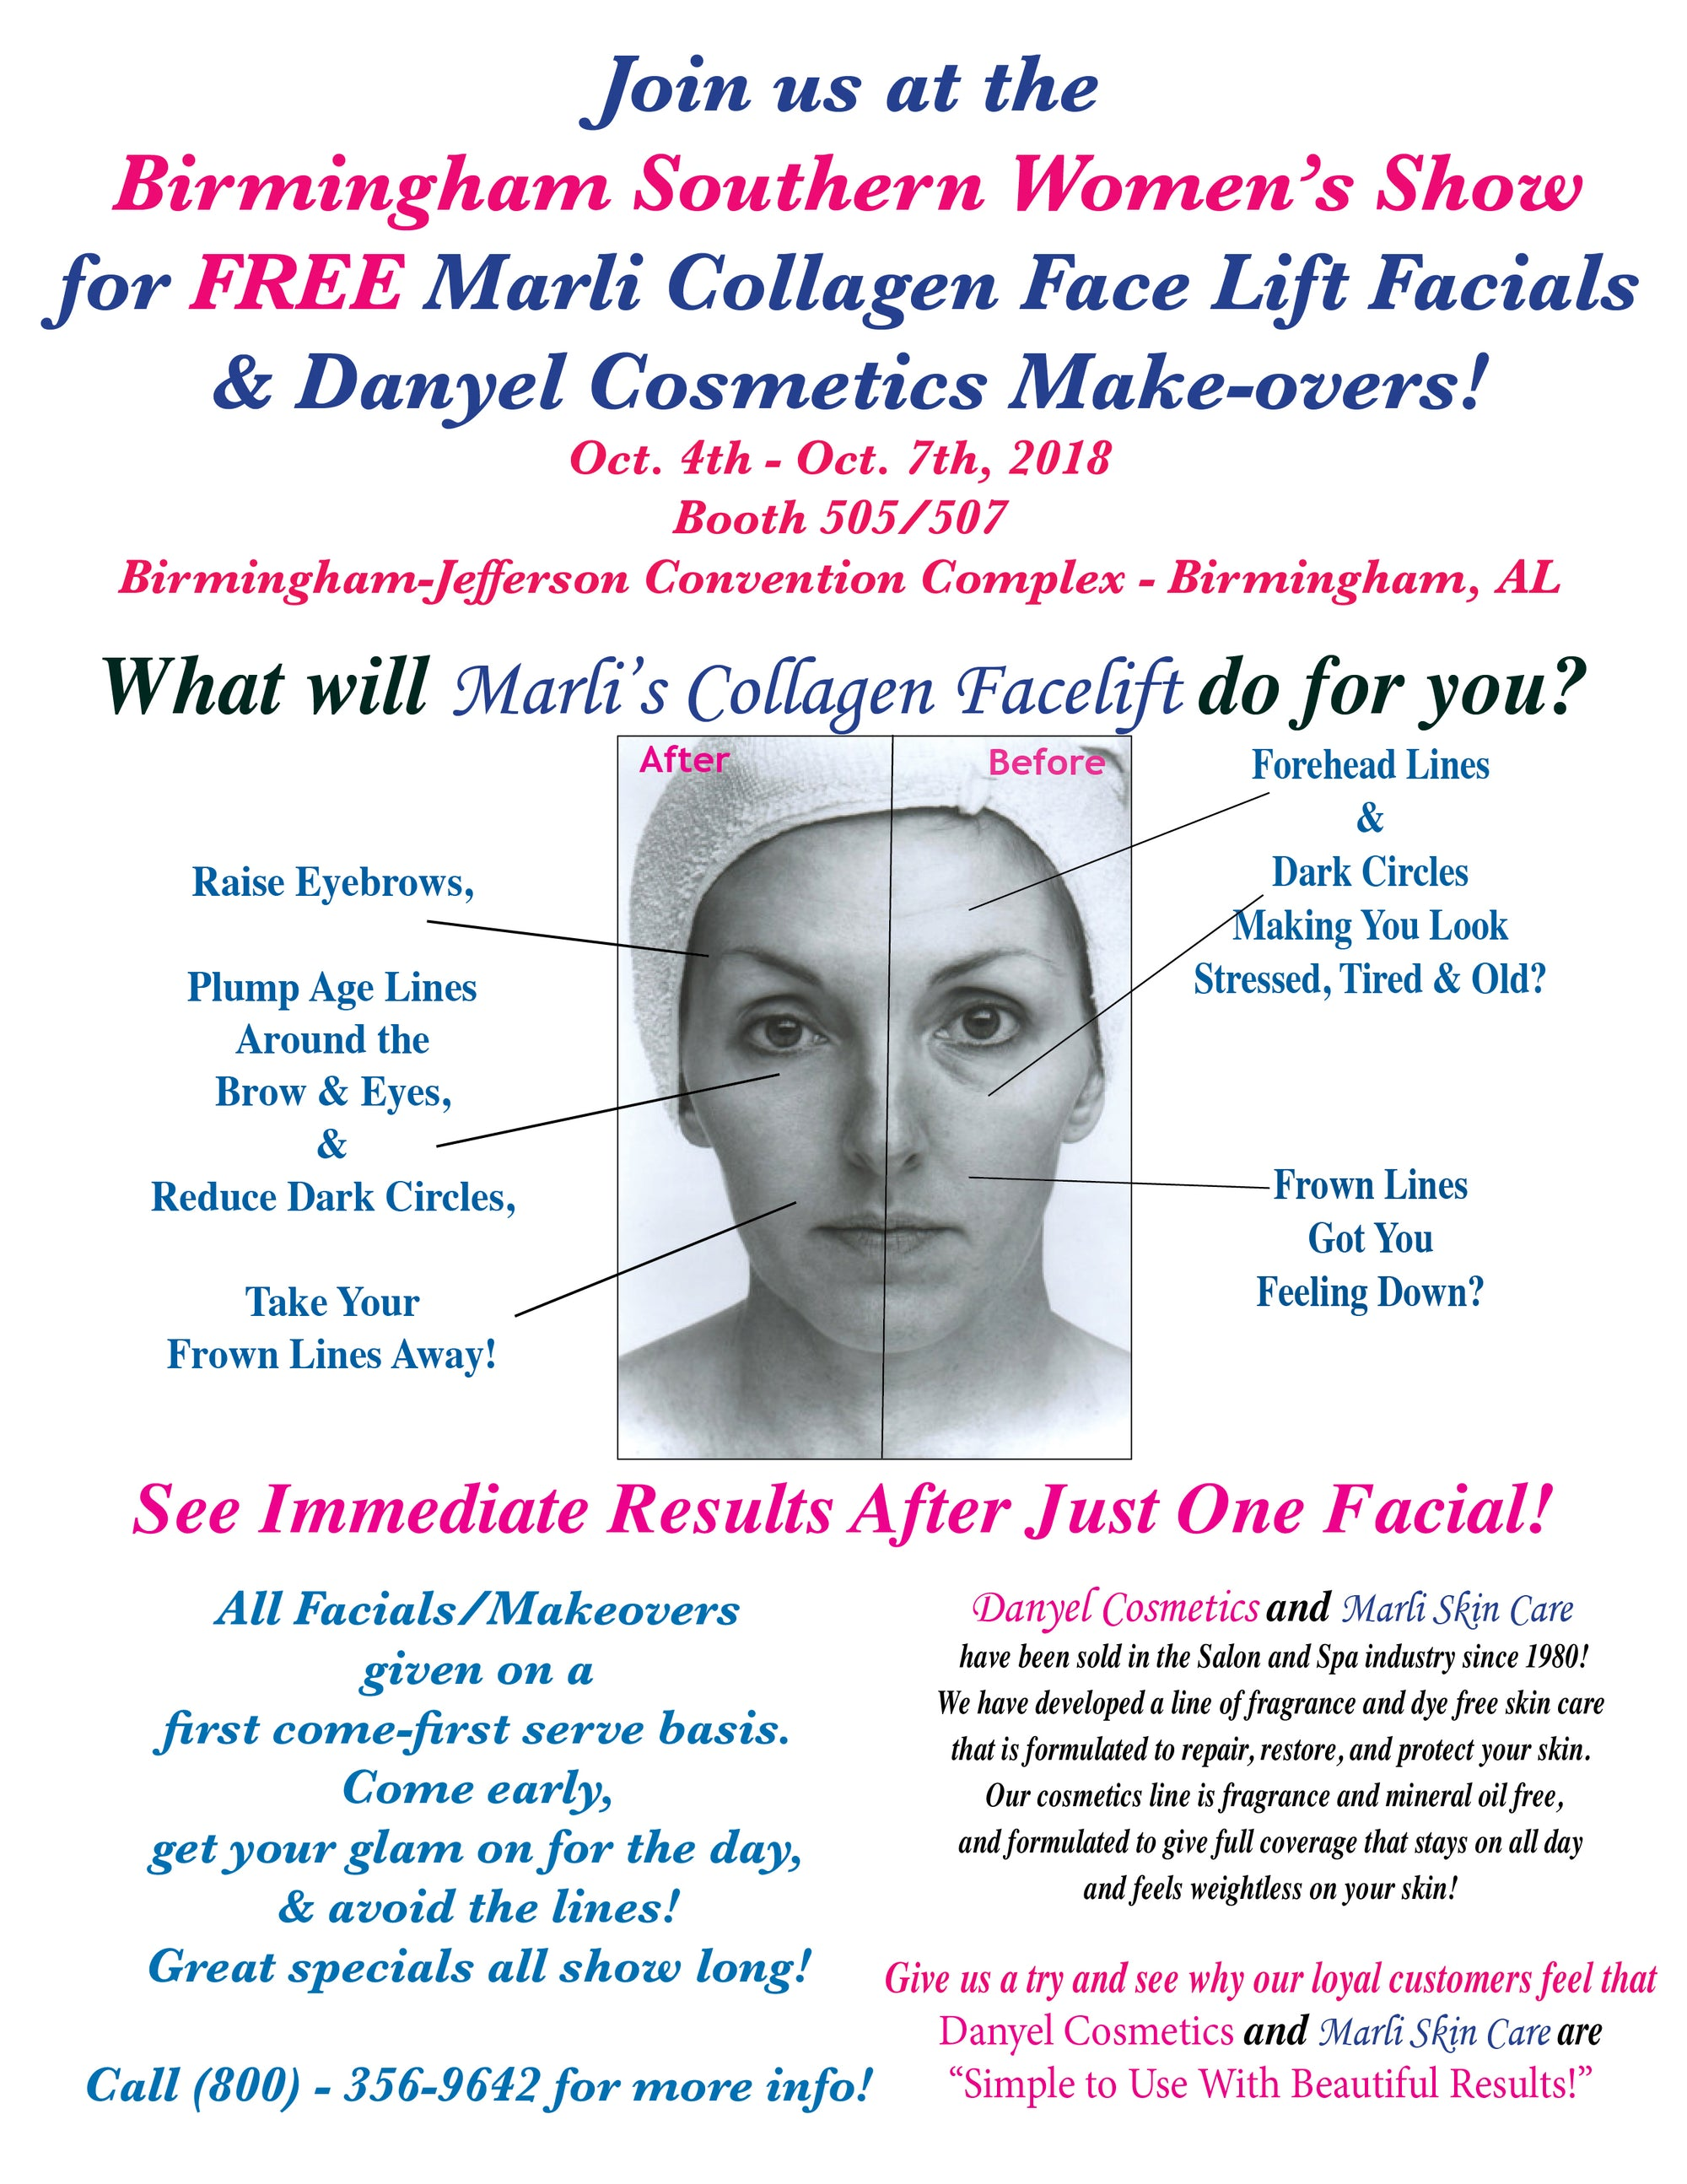 Free Collagen Facials & Makeovers At the Southern Women's Show in Birmingham!